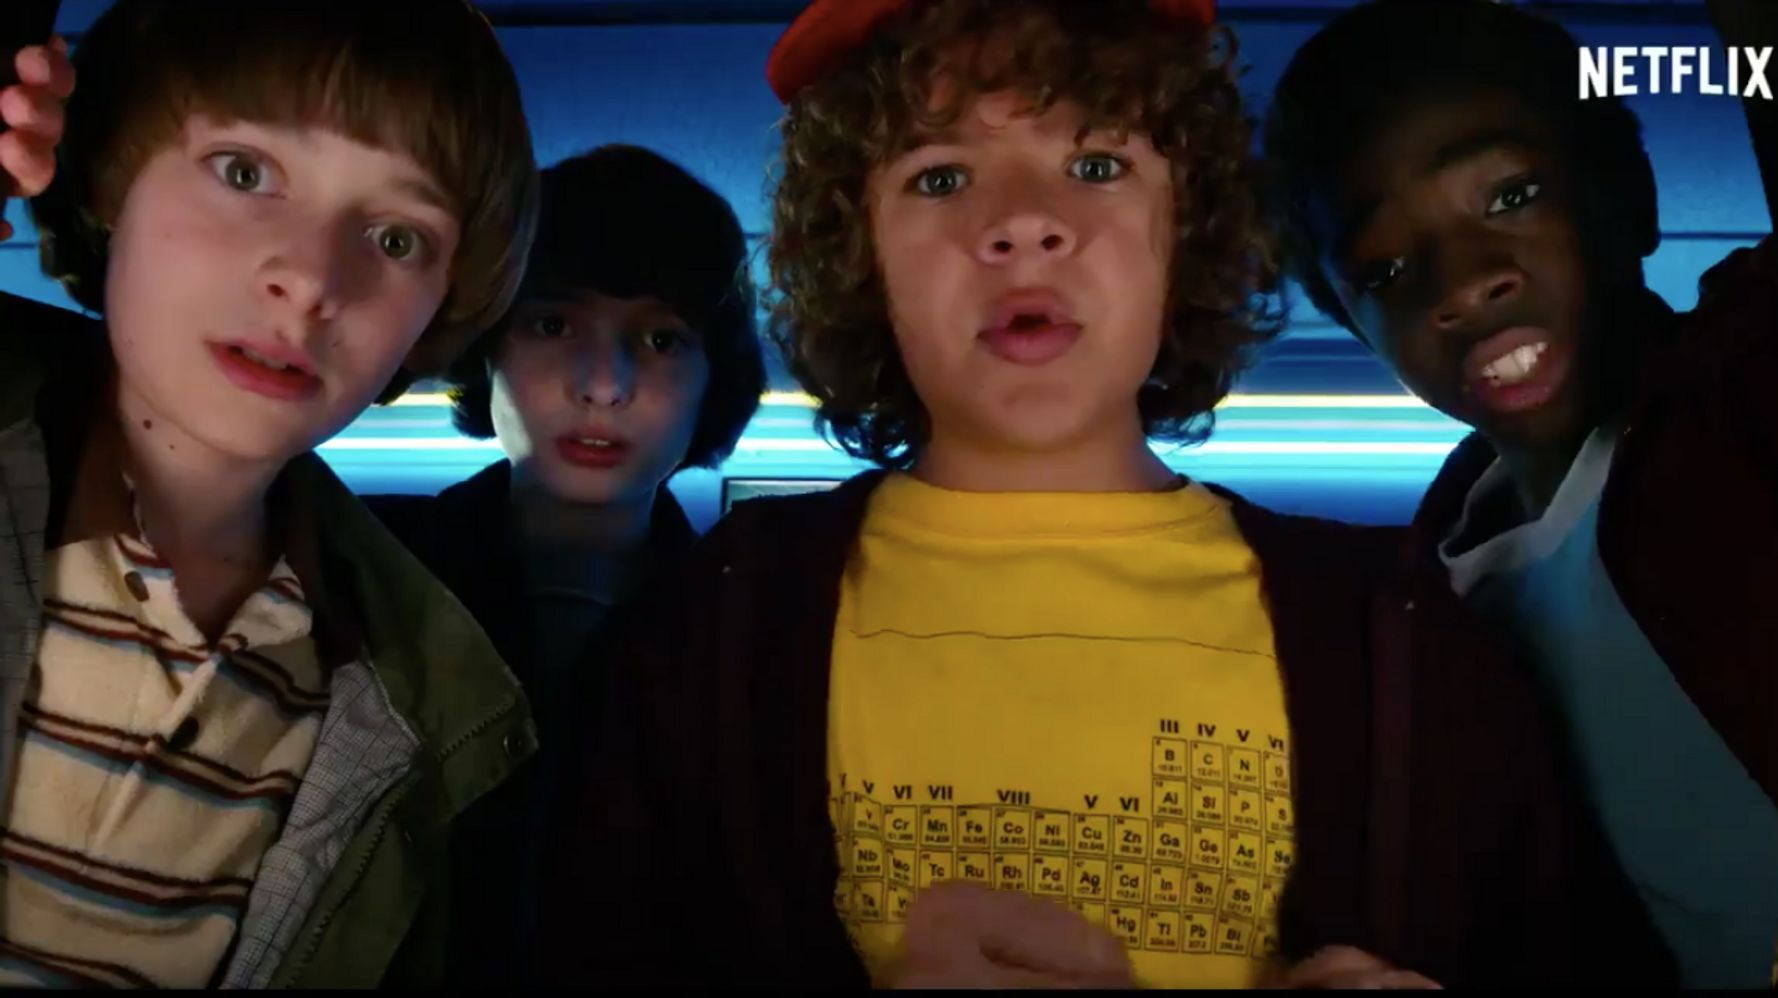 'Stranger Things' Season 2 Trailer Is An Eleven Out Of Ten